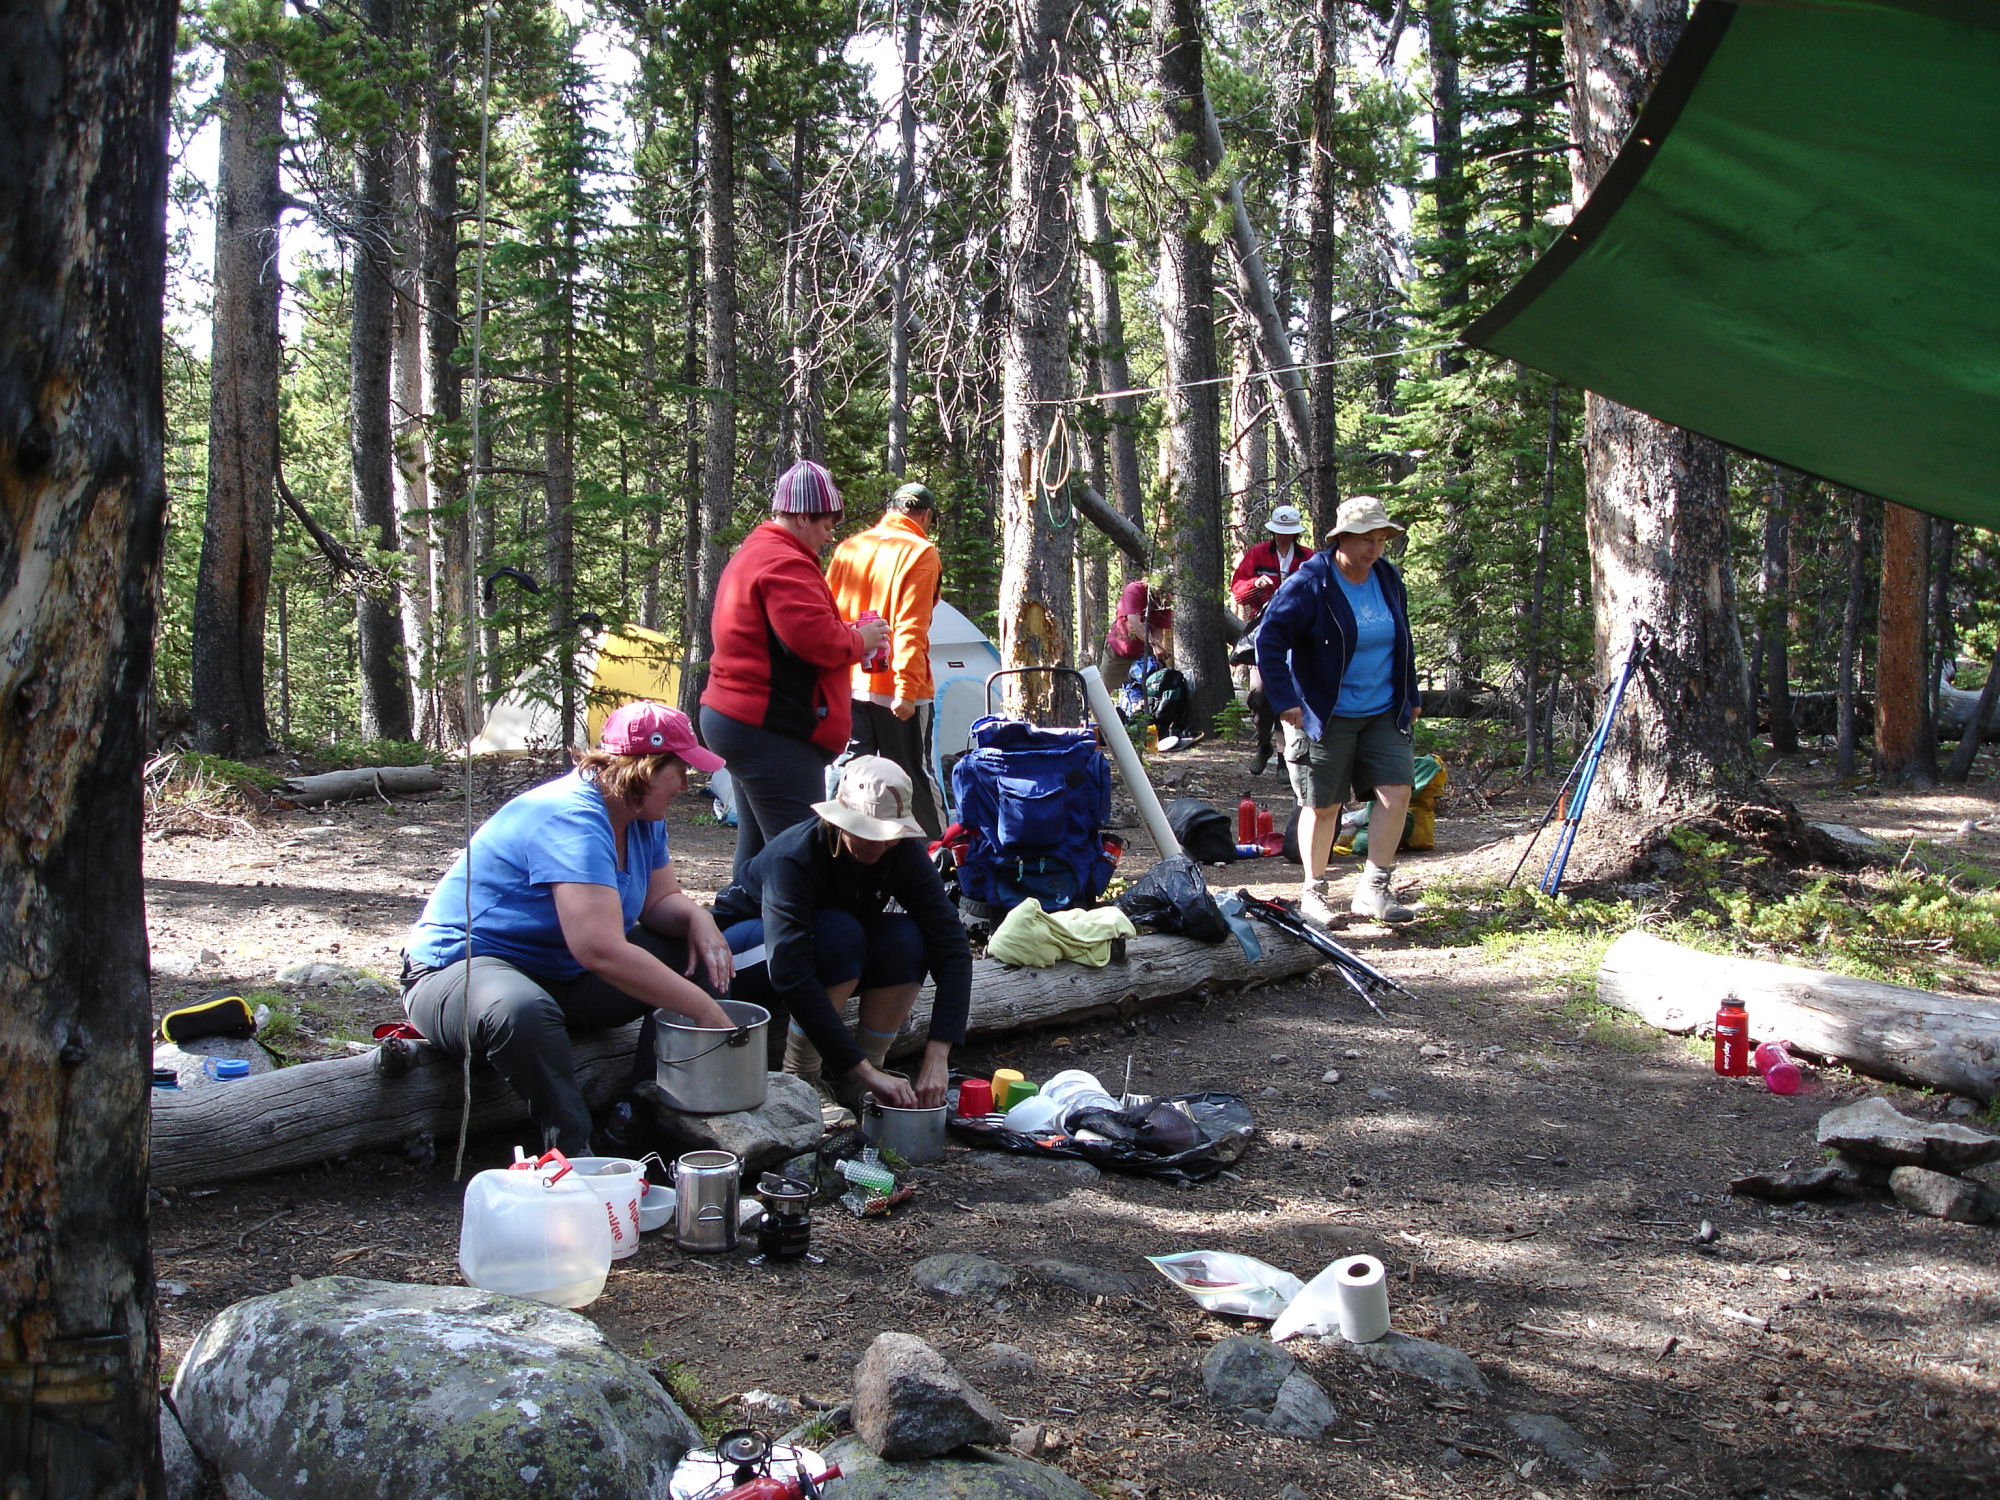 Camping Trips - New Trails Ministry